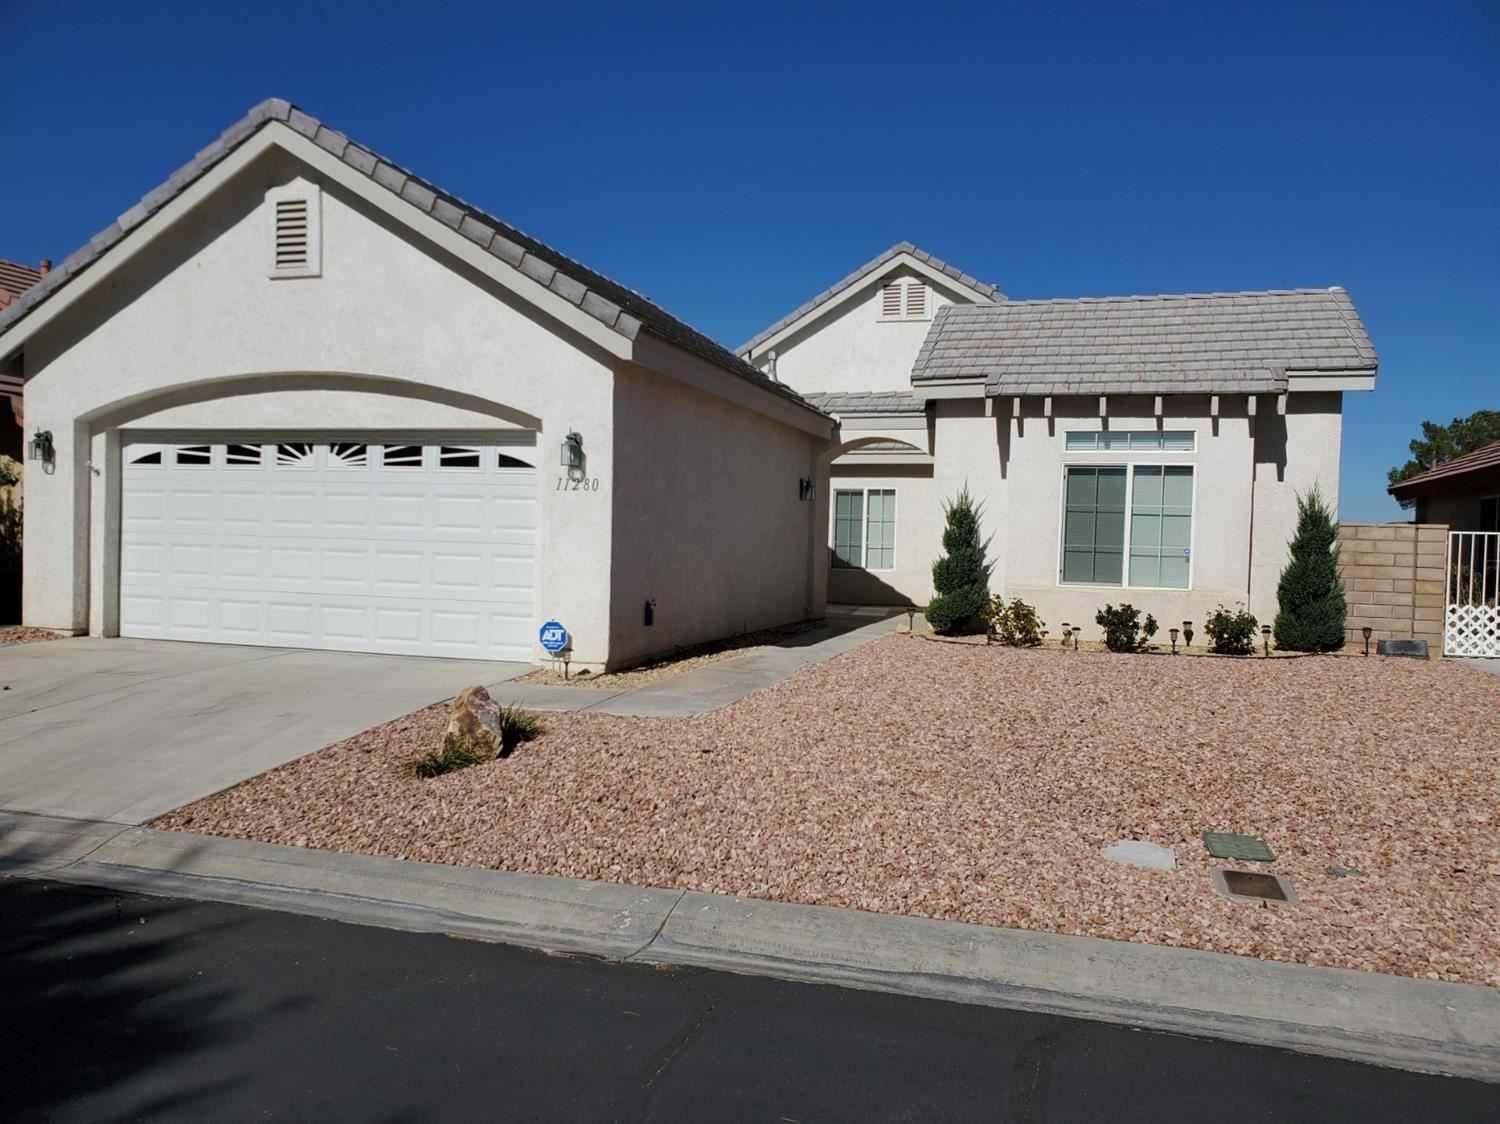 11280 Country Club Drive, Apple Valley, CA 92308 - MLS#: 526755